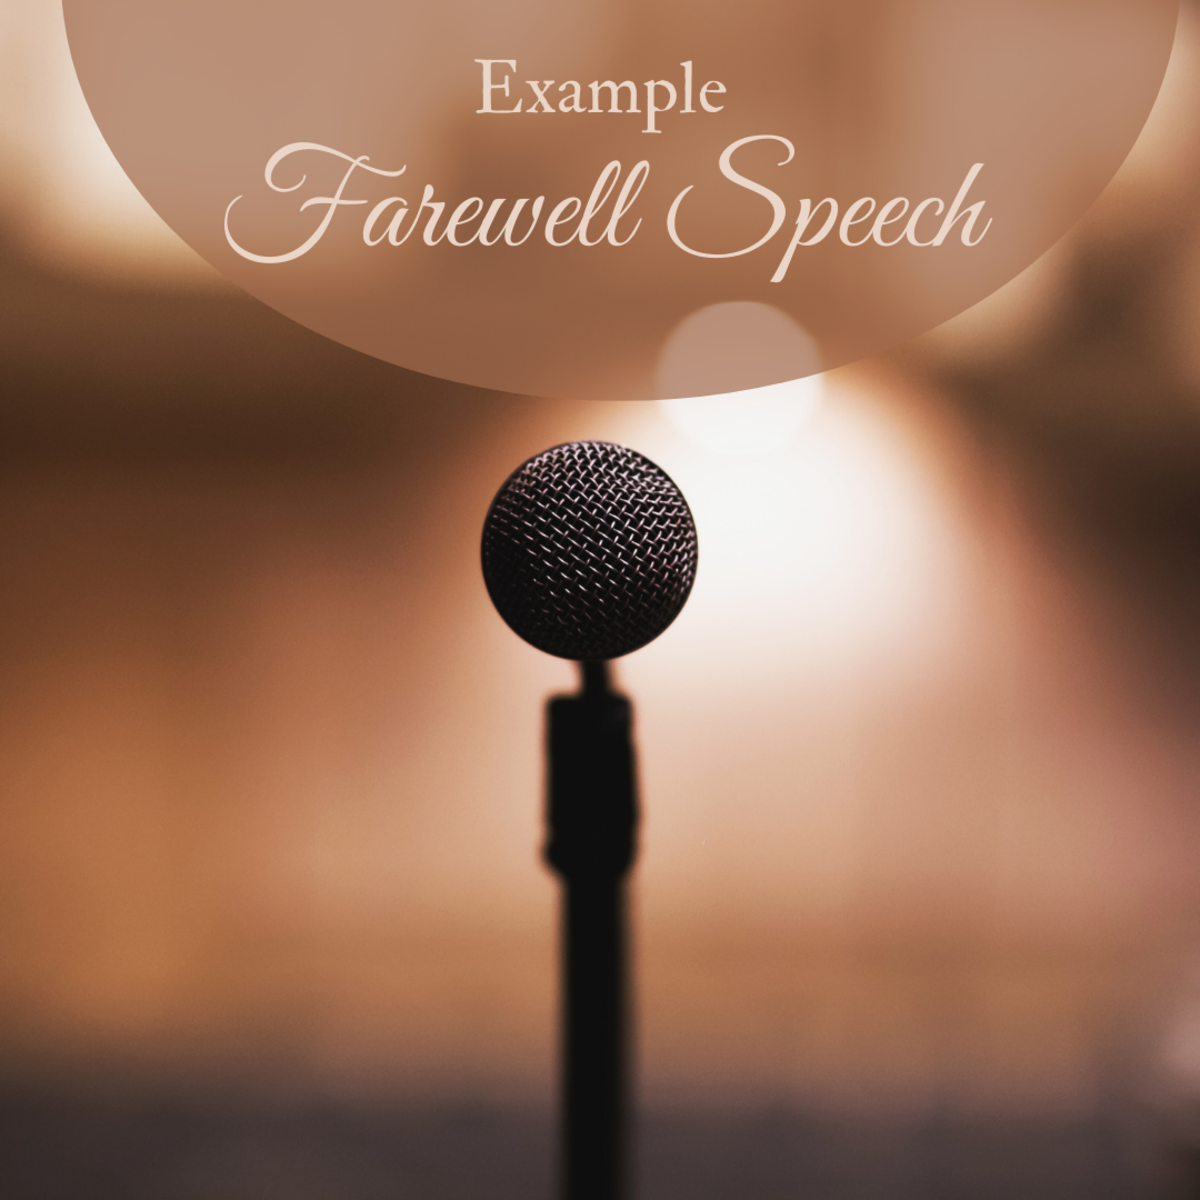 On occasion, you'll need to prepare a farewell speech to say goodbye and thank you to a departing teacher or mentor. Here's a sample you can use as inspiration.